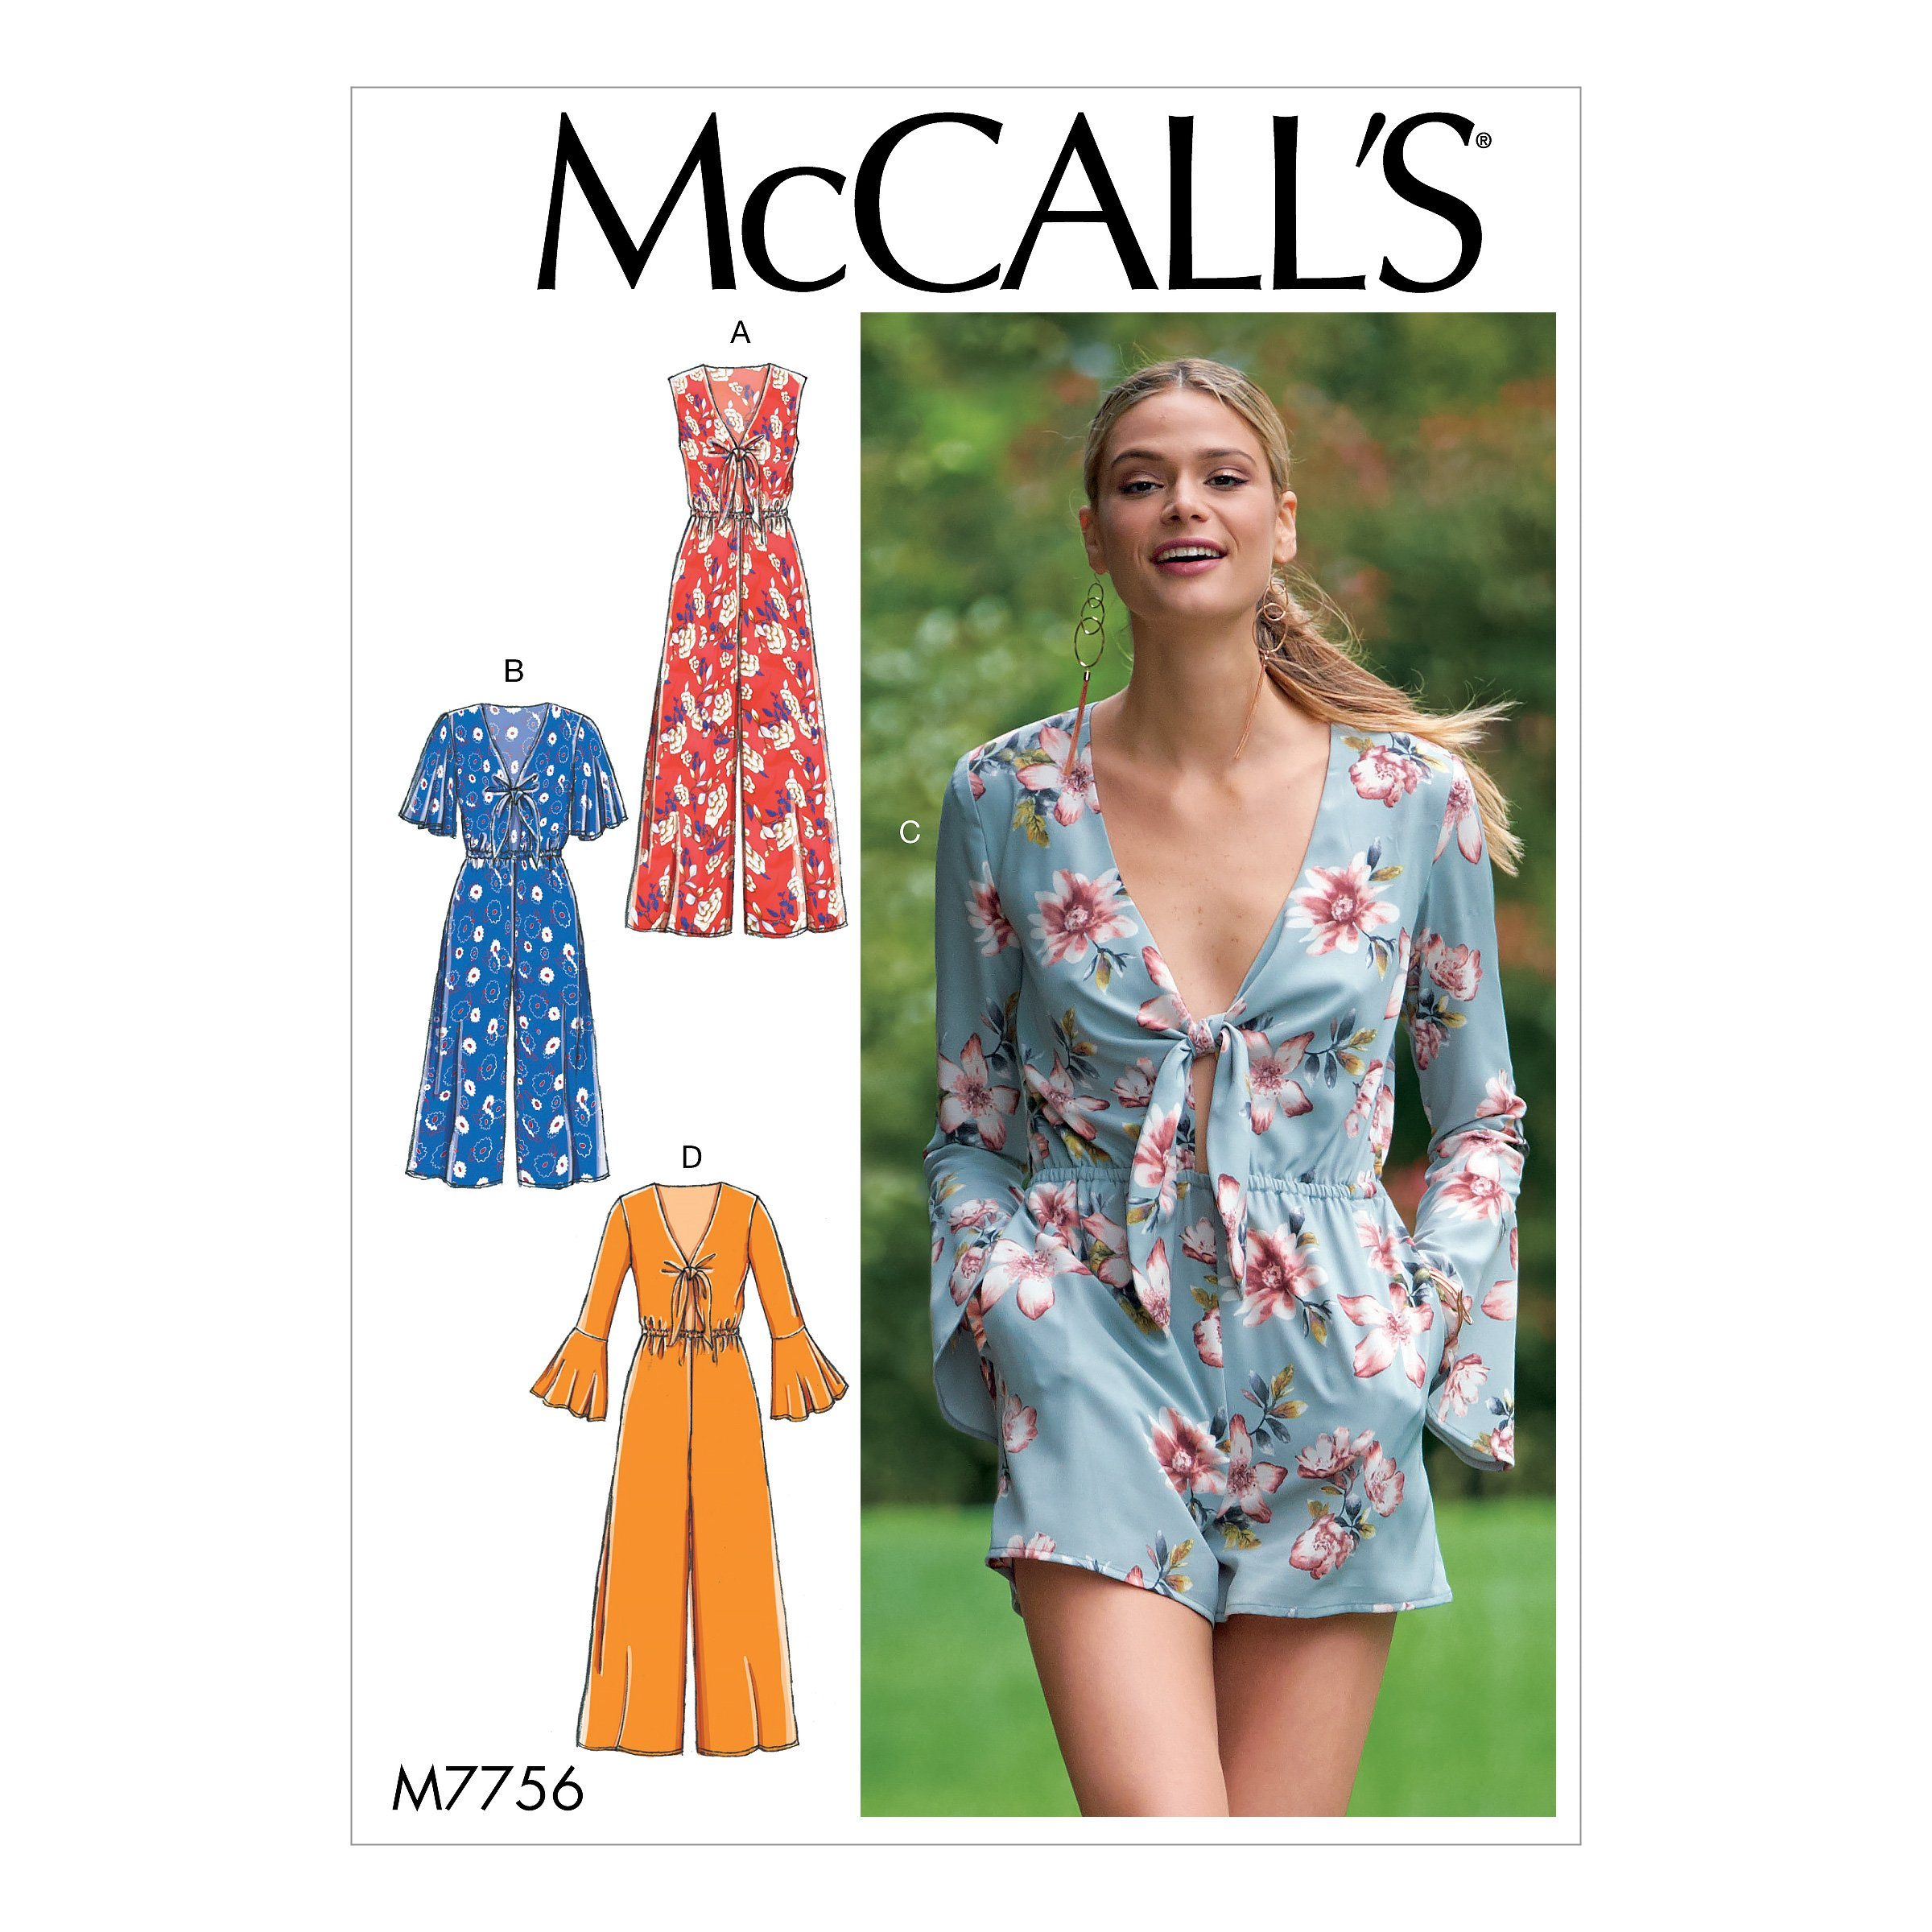 McCalls Easy SEWING PATTERN M7775 Misses Dresses 6-14 Or 14-22